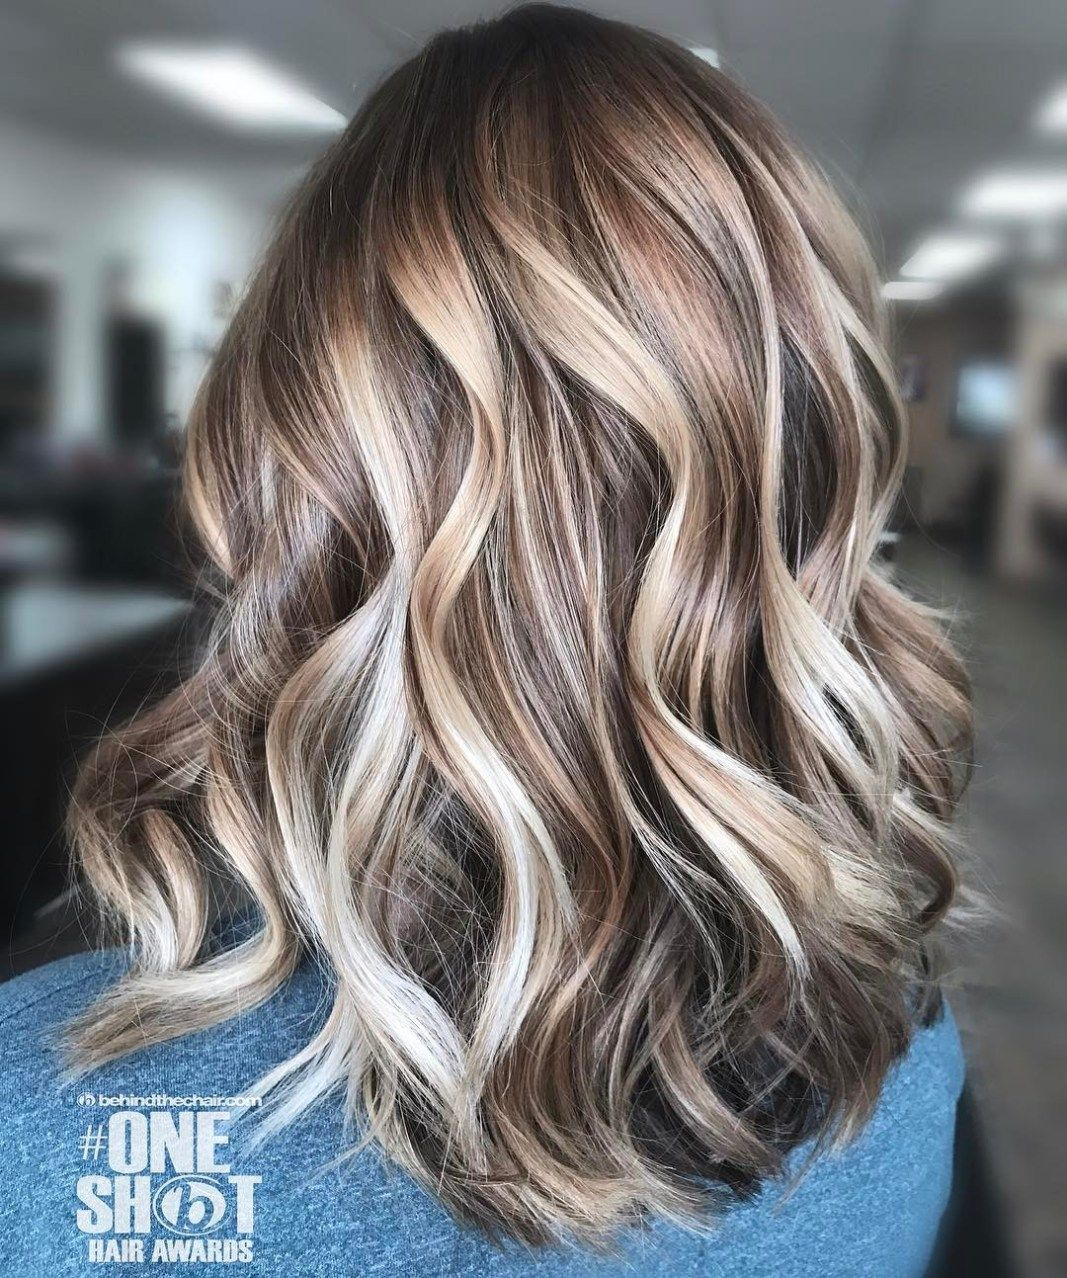 Blonde Balayage Hair Colors With Highlights: 70 Flattering Balayage Hair Color Ideas For 2019